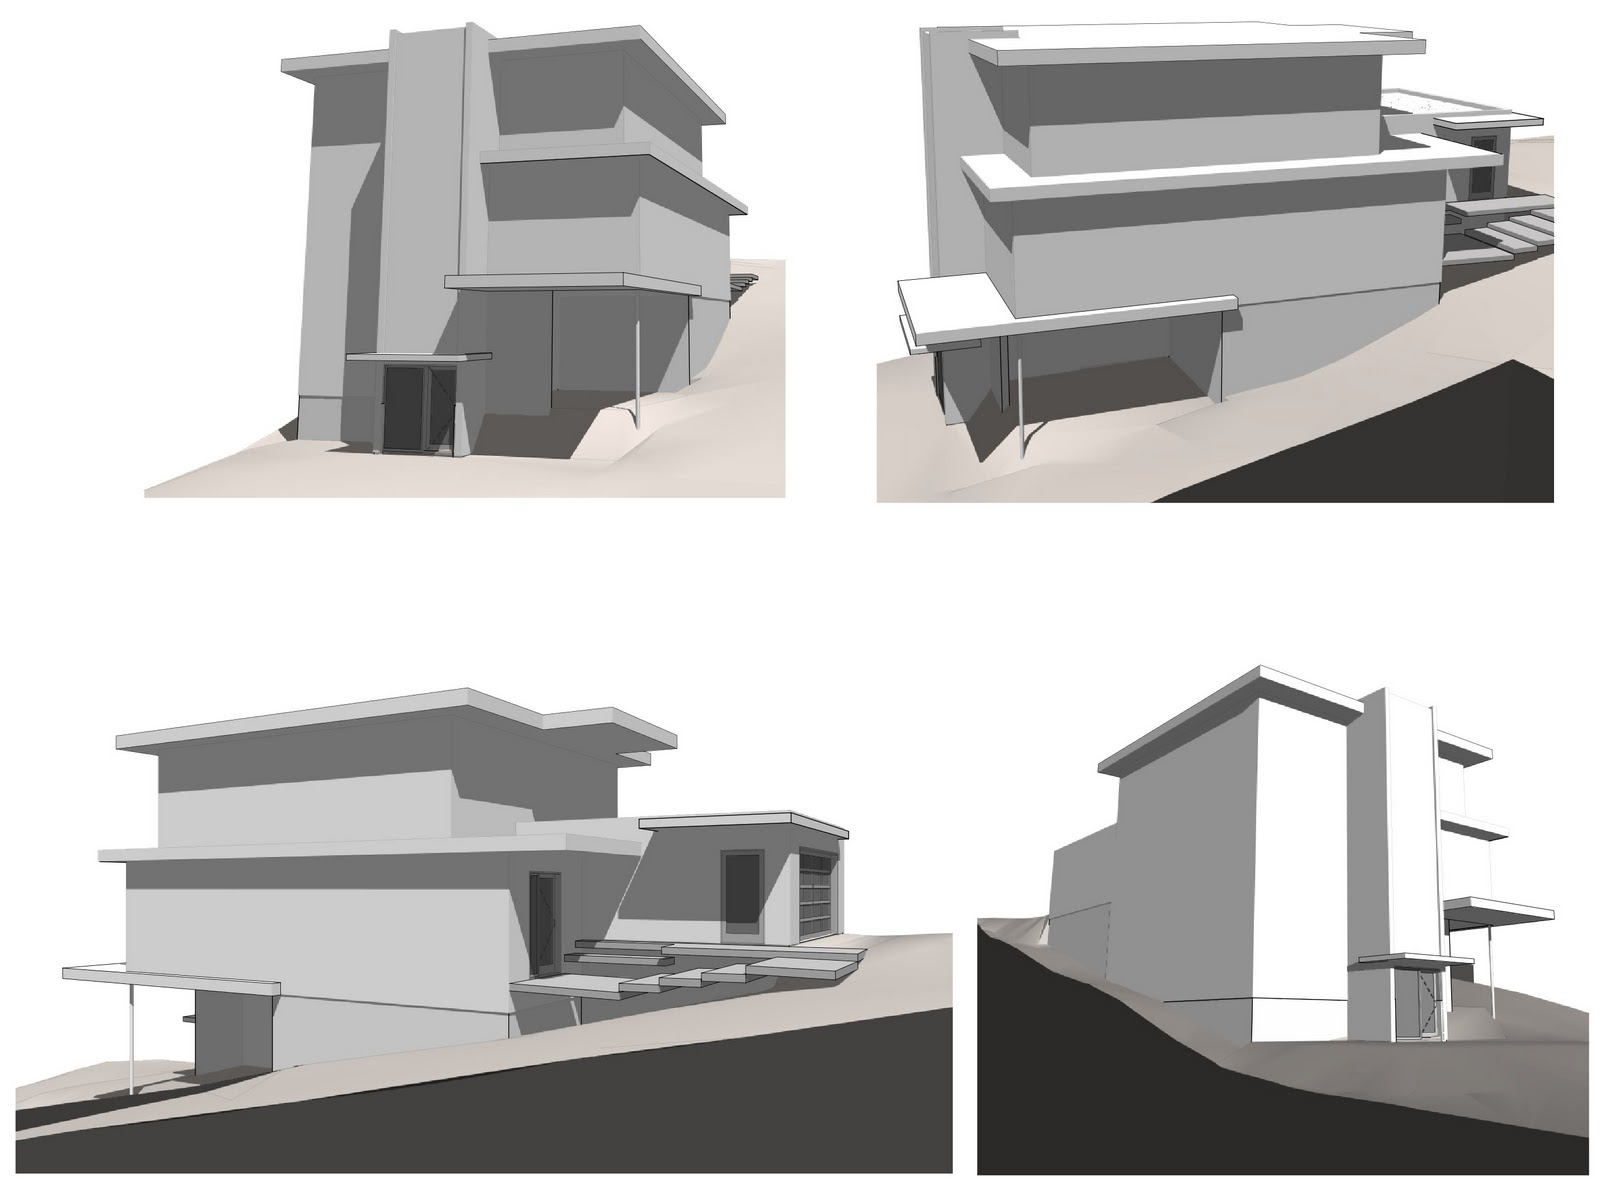 As The Images Show, Our Lot Has A Strong Slope From East To West. The  Garage Is Actually Elevated A Few Feet Above The Main Level To Decrease The  Slope Of ...